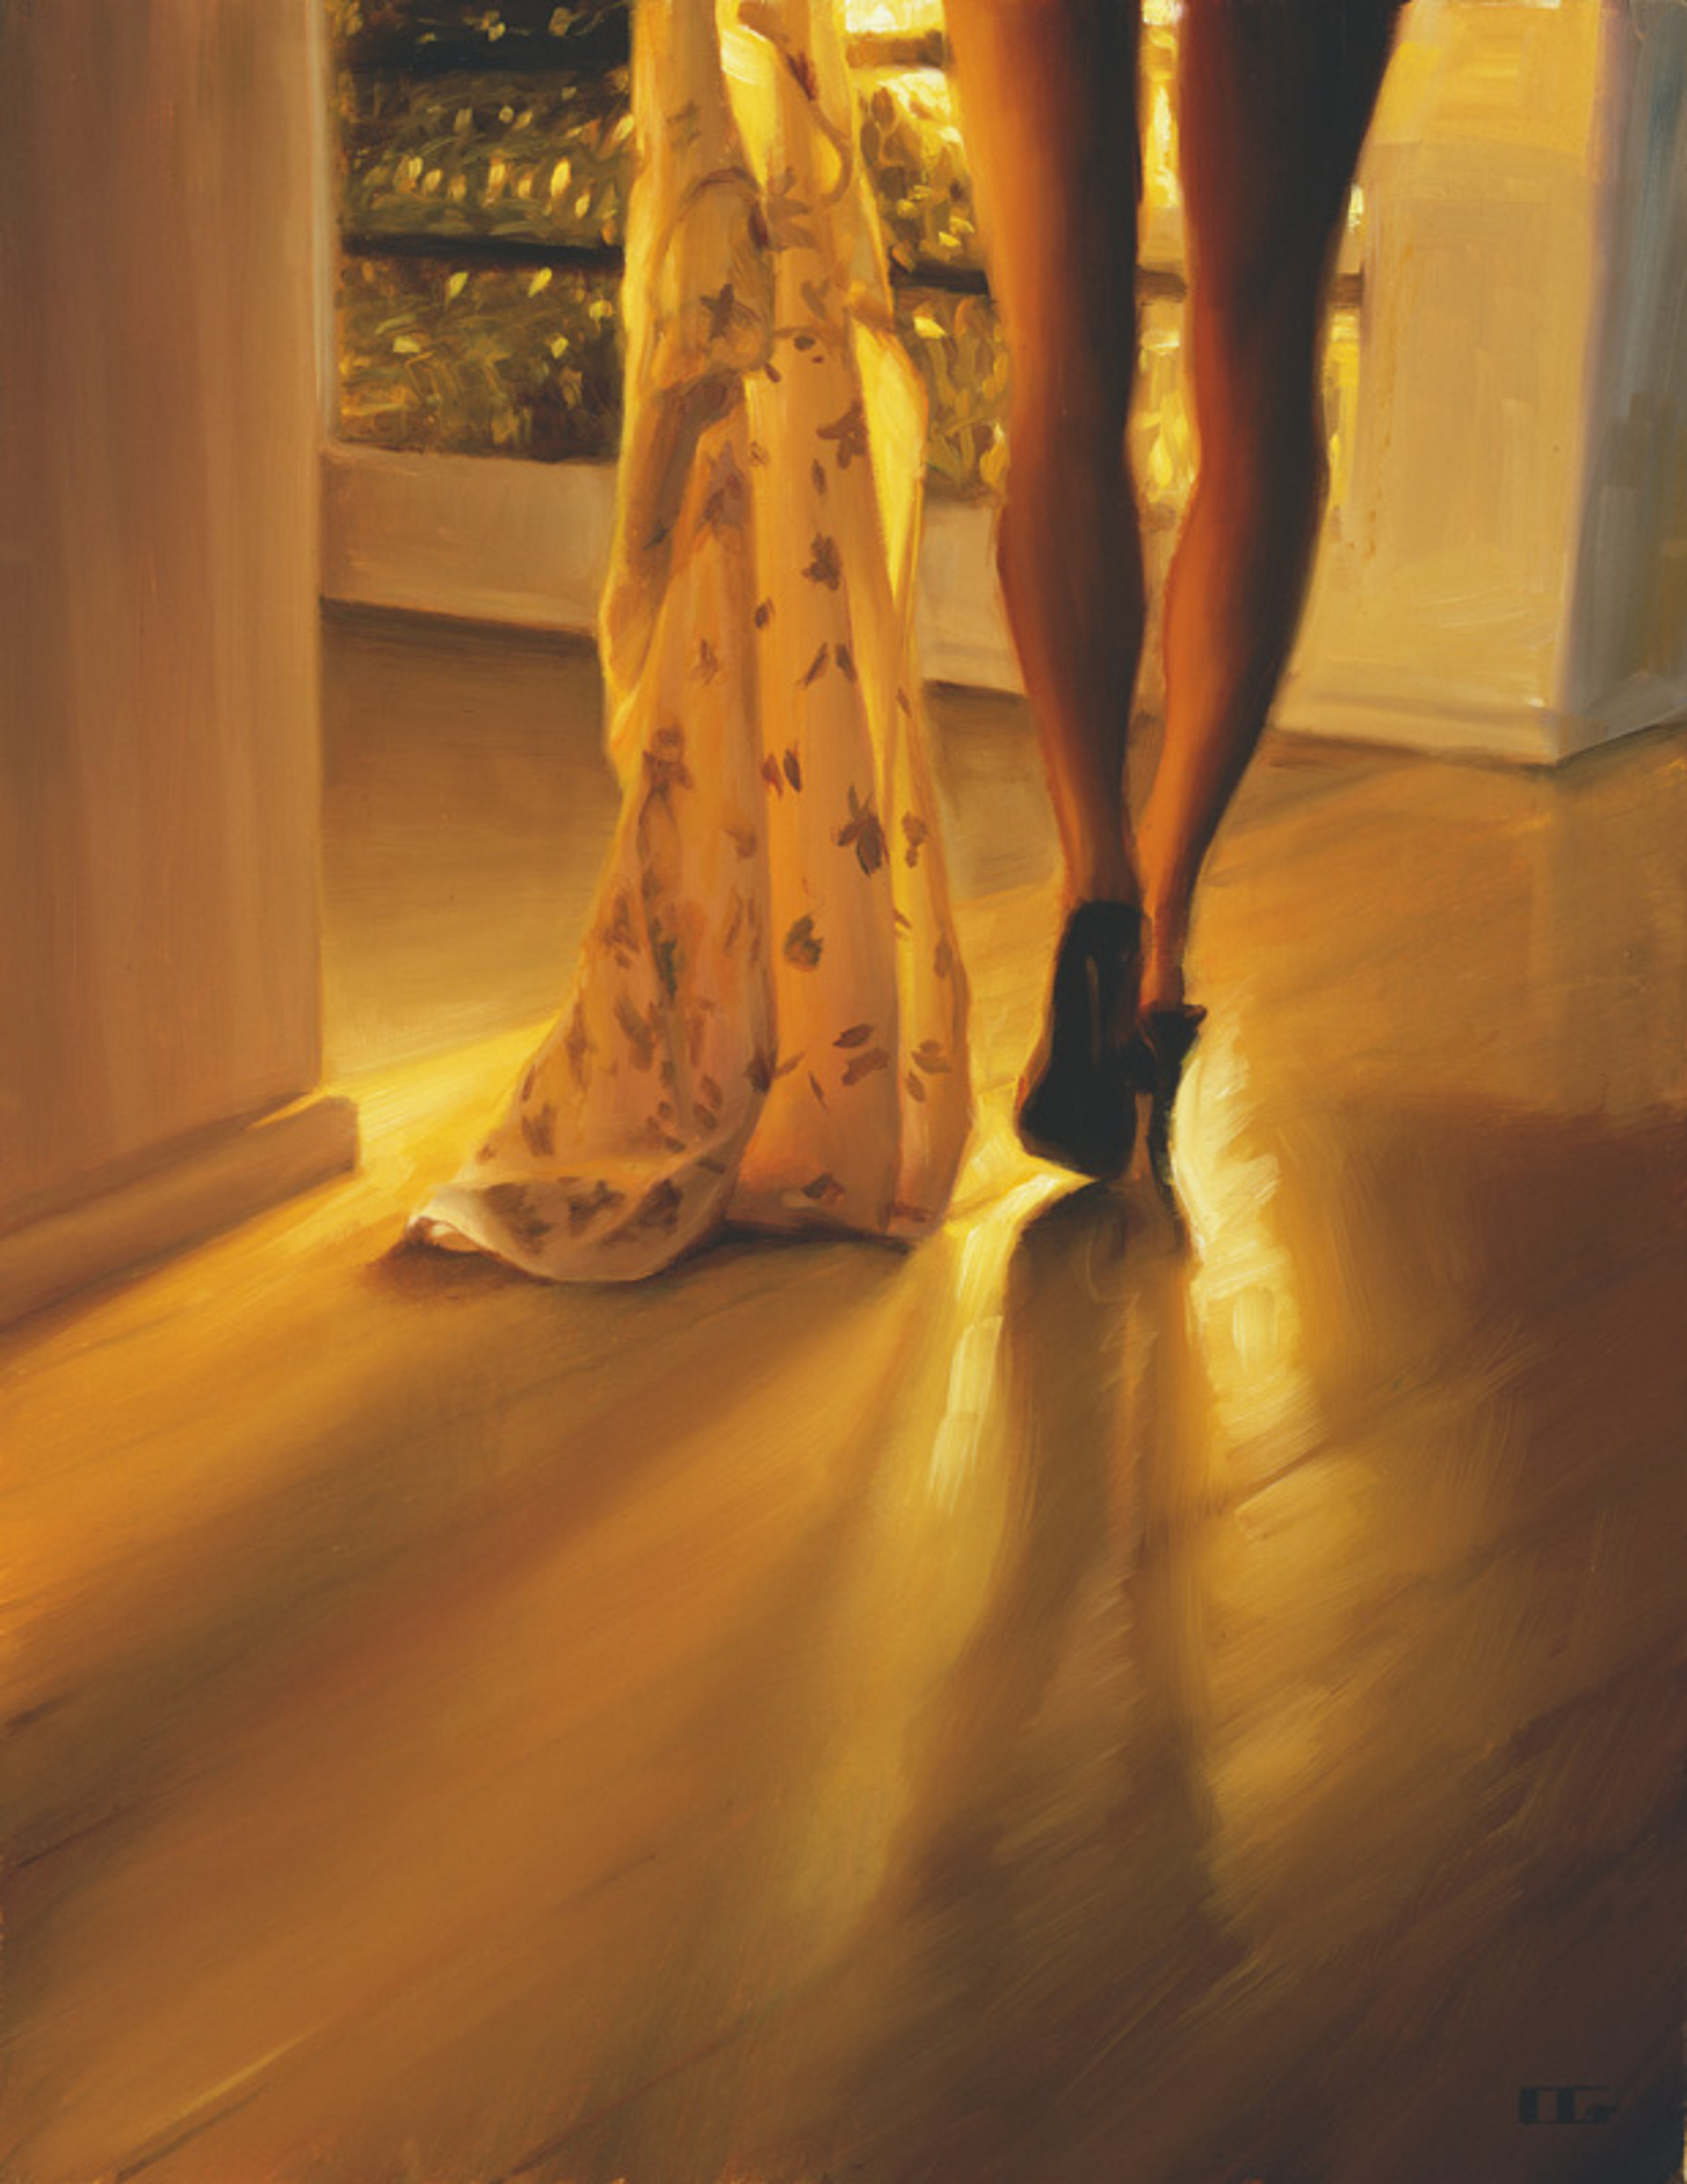 Sundress in the Sun (S/N) by Carrie Graber